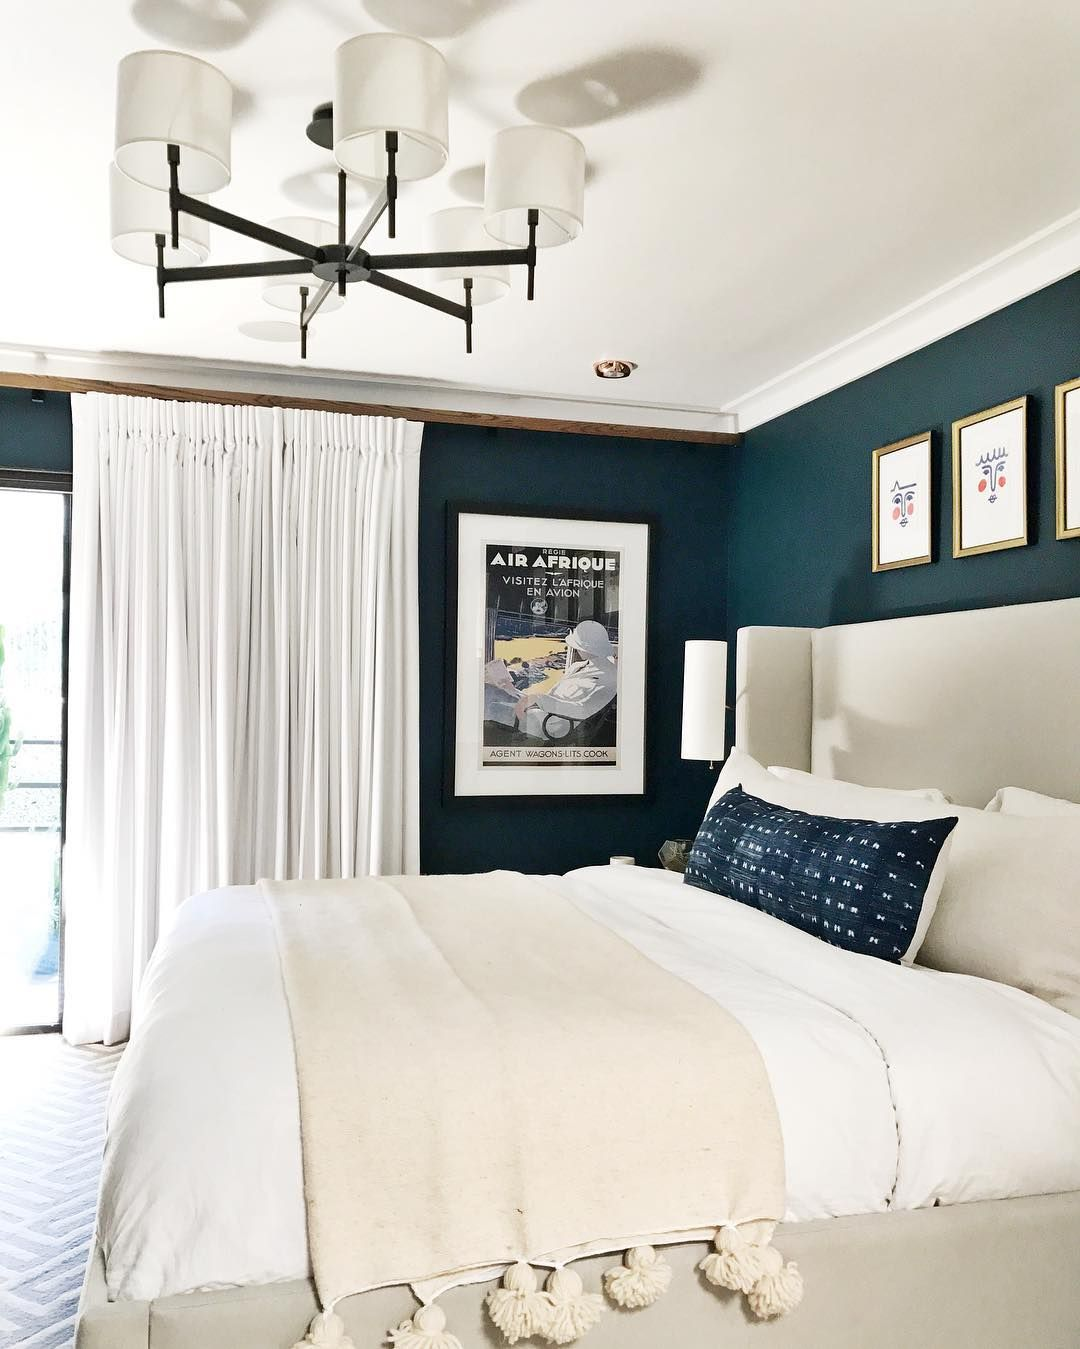 10 Cozy And Dreamy Bedroom With Galaxy Themes: 10 Cozy Bedrooms That Are The Stylish Sanctuary We All